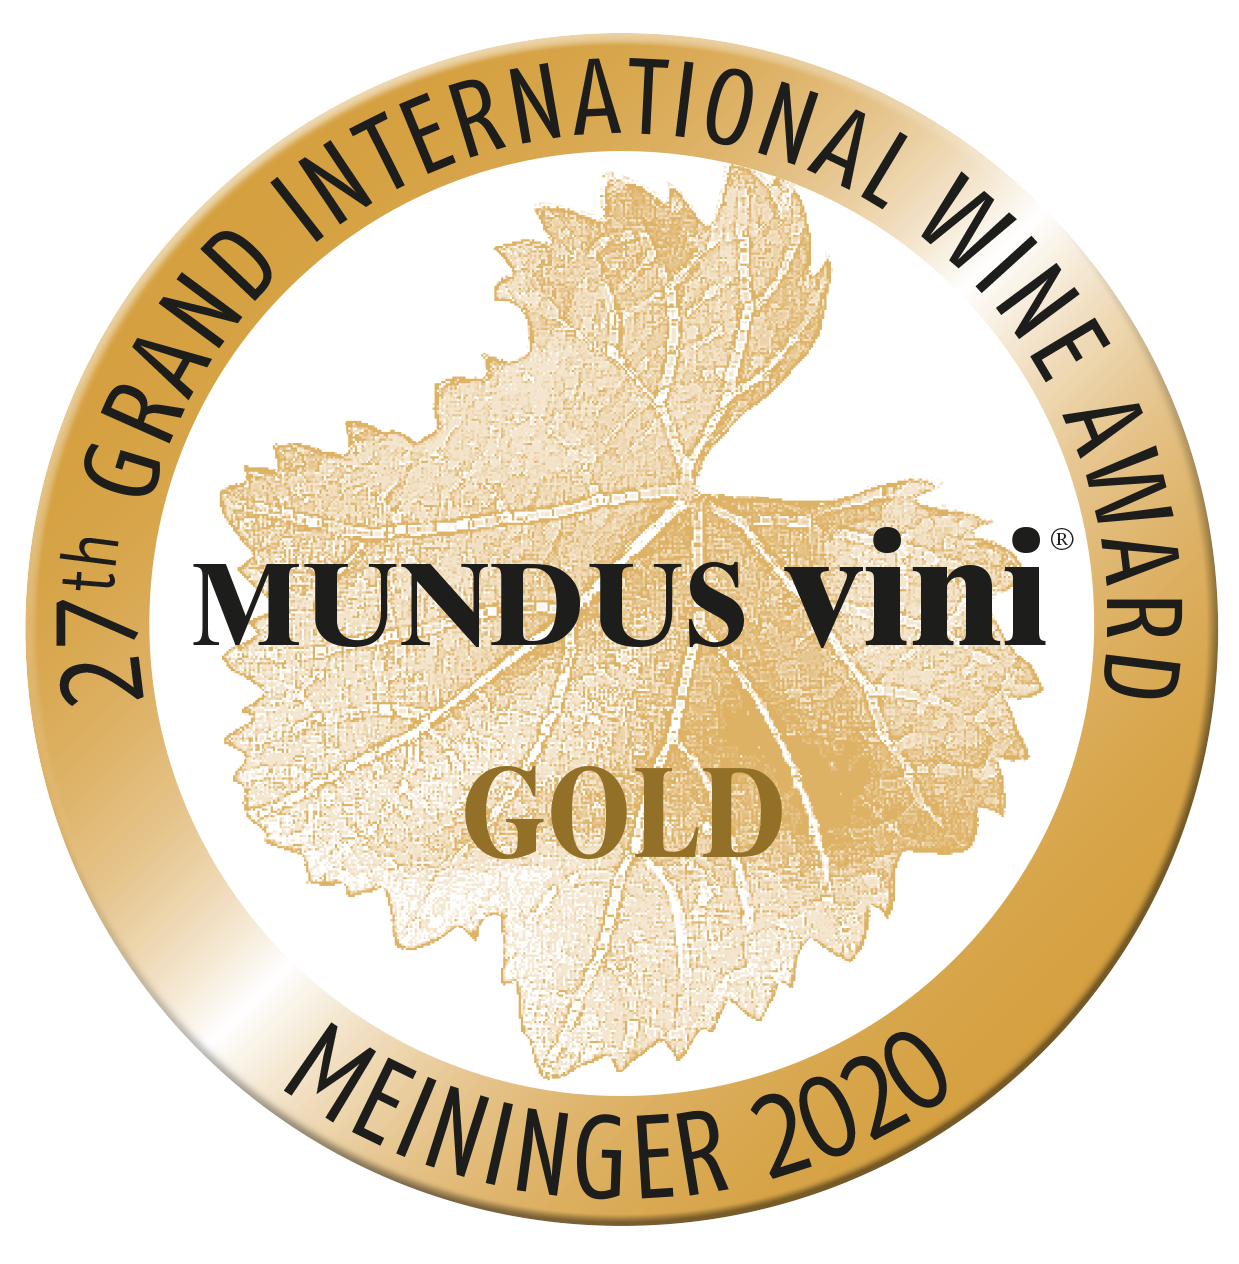 award-gold-mundus-vini-2020